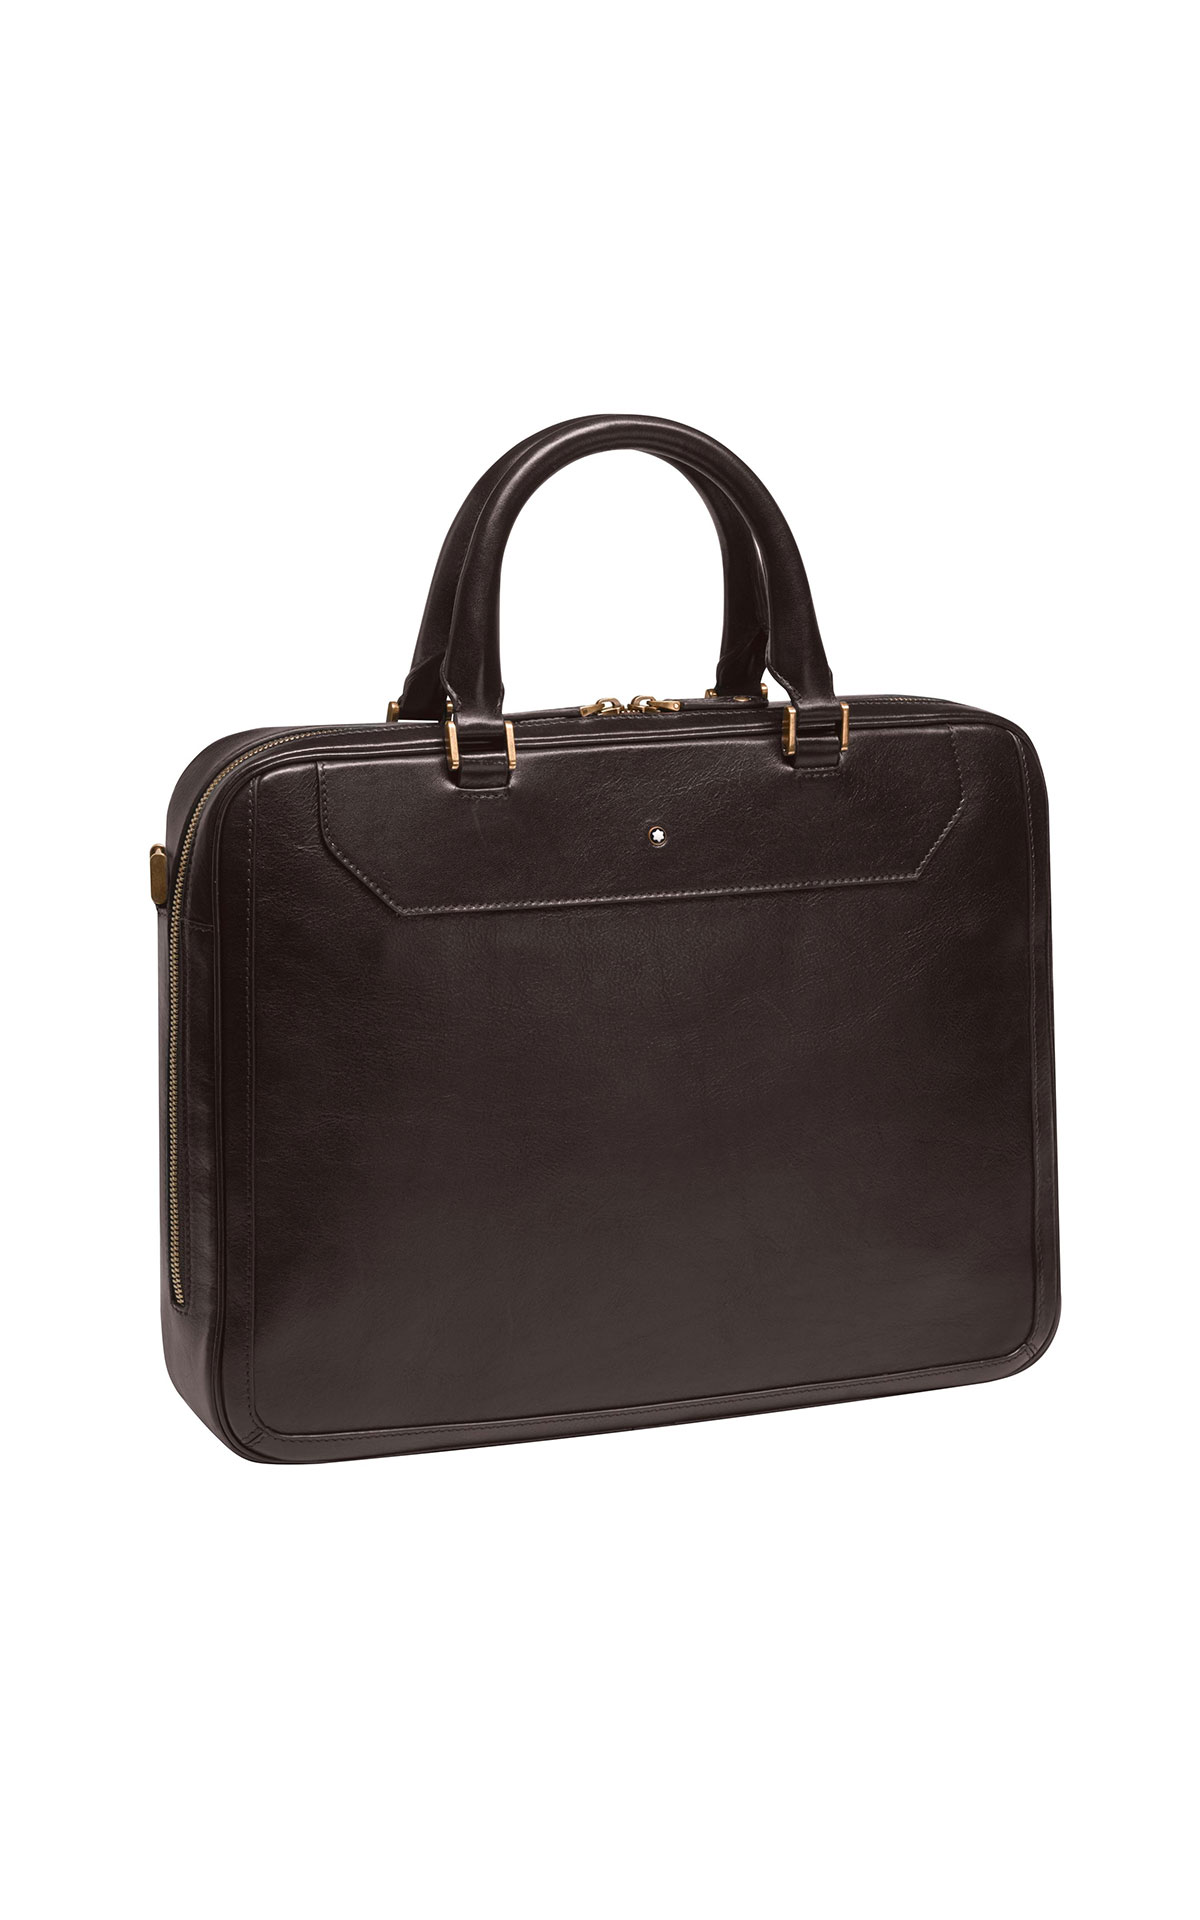 Montblanc Document Case slim, Dark Brown from Bicester Village